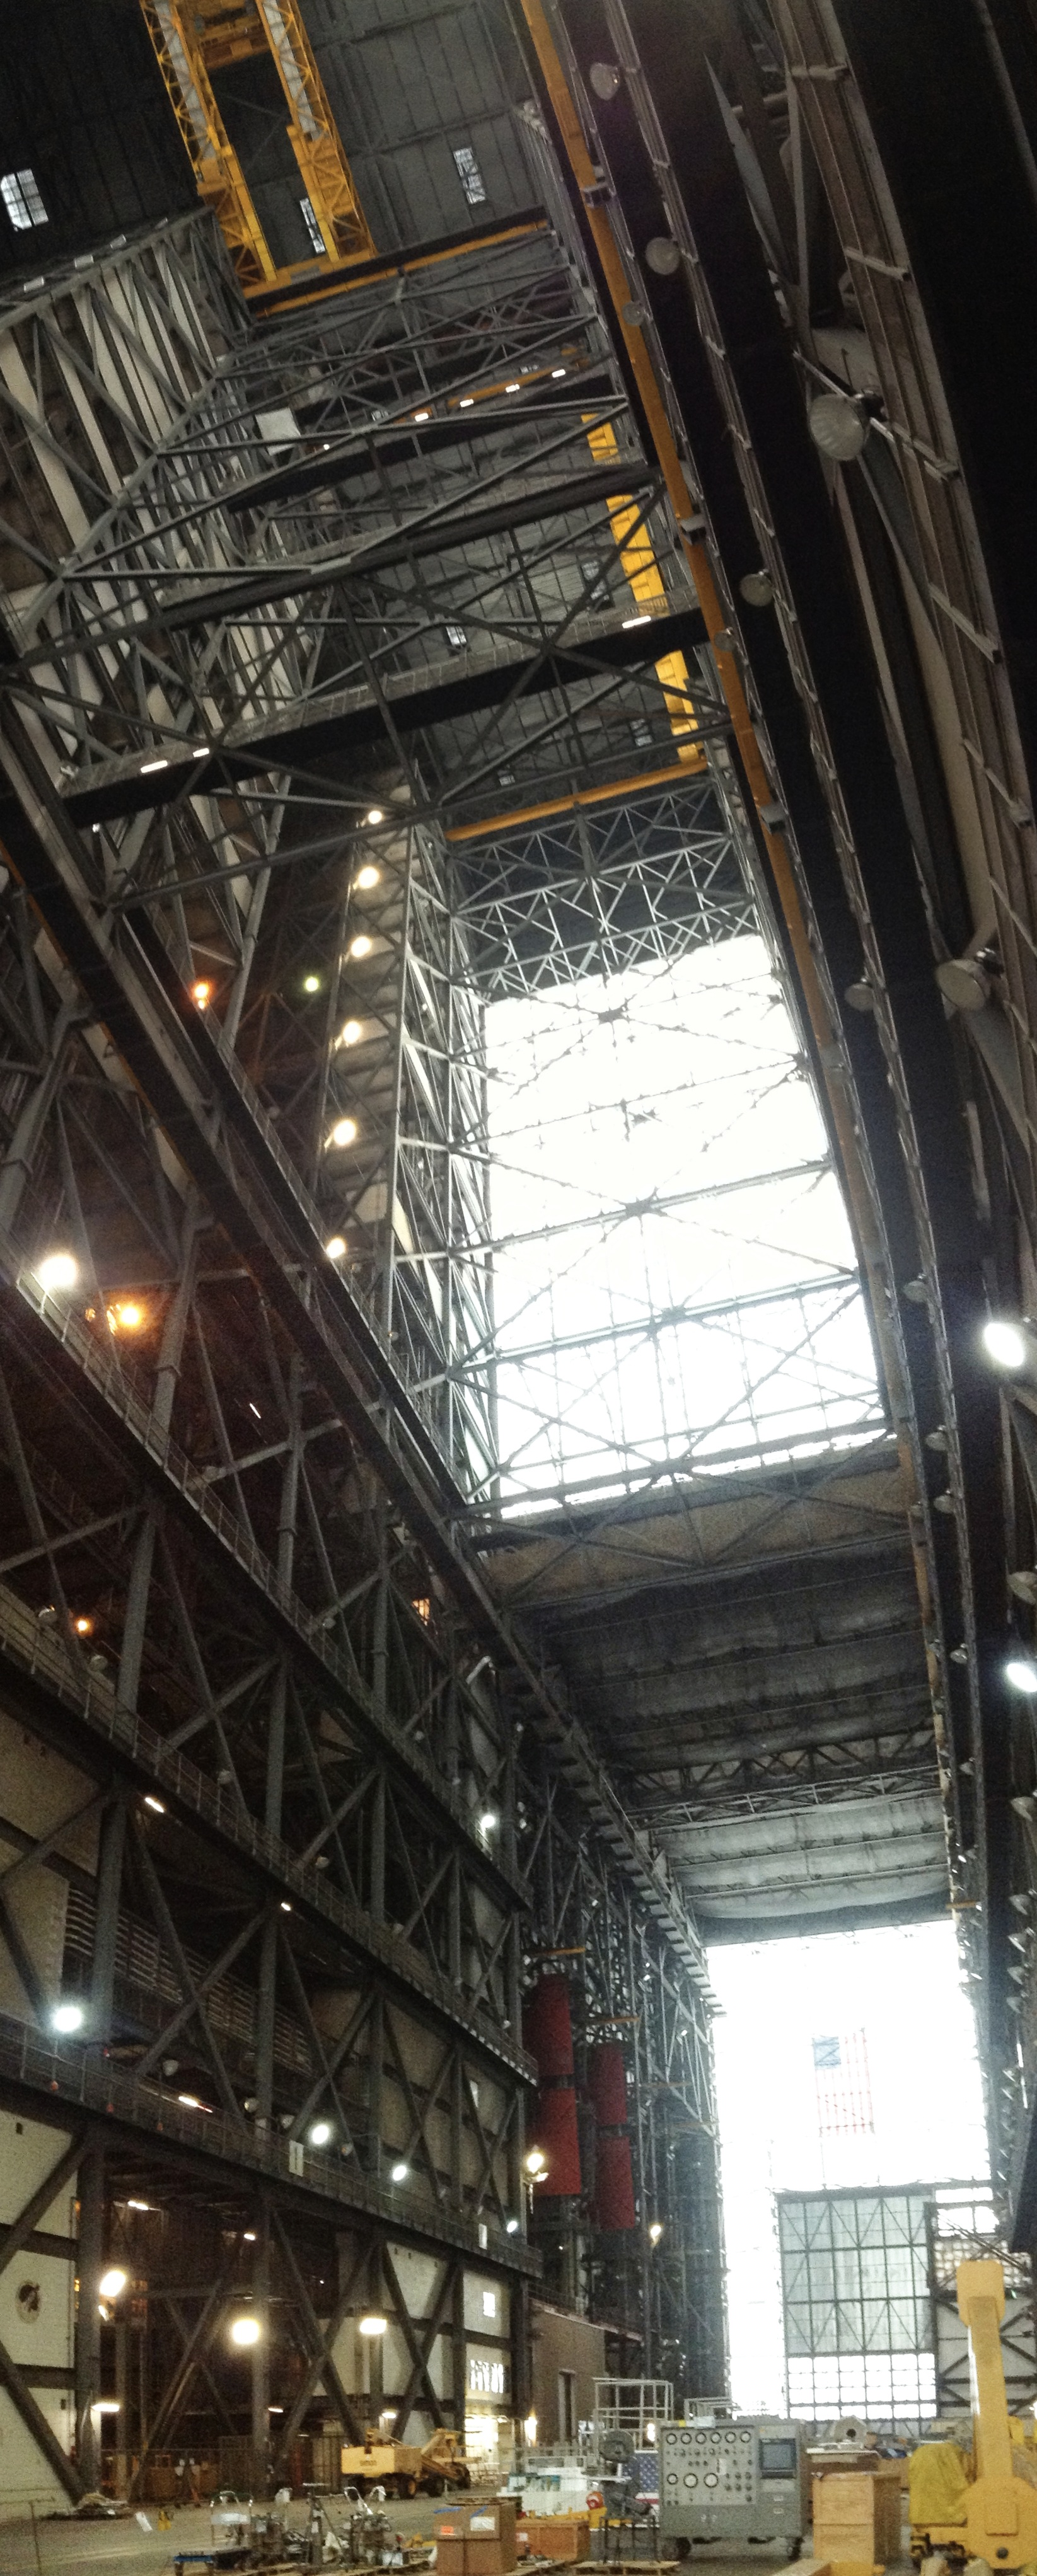 Inside NASA's massive Vehicle Assembly Building at Kennedy Space Center, Florida. Space shuttles and the Saturn V rocket, world's largest to date, were prepared for launch here. Photo: Traveling Reporter